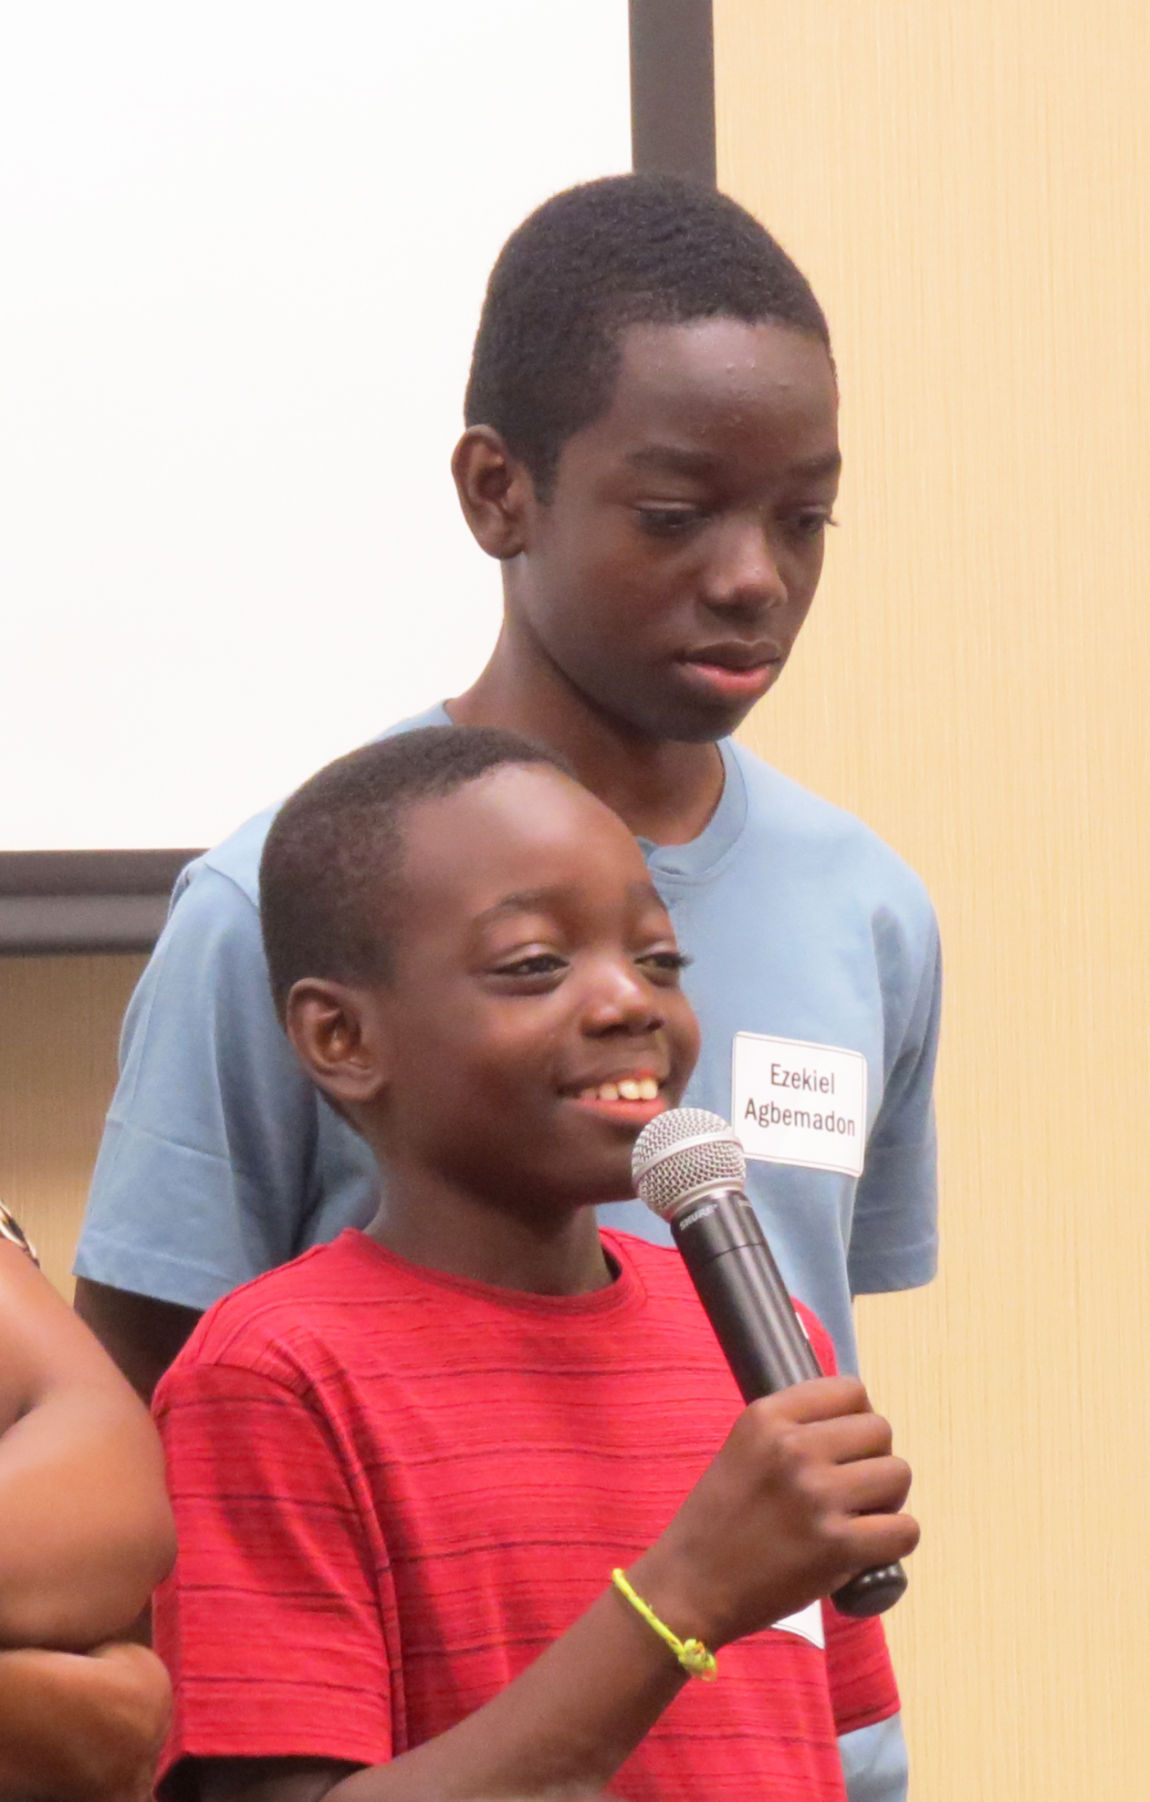 Nate and Ezekiel at the Great Expectations kick-off event